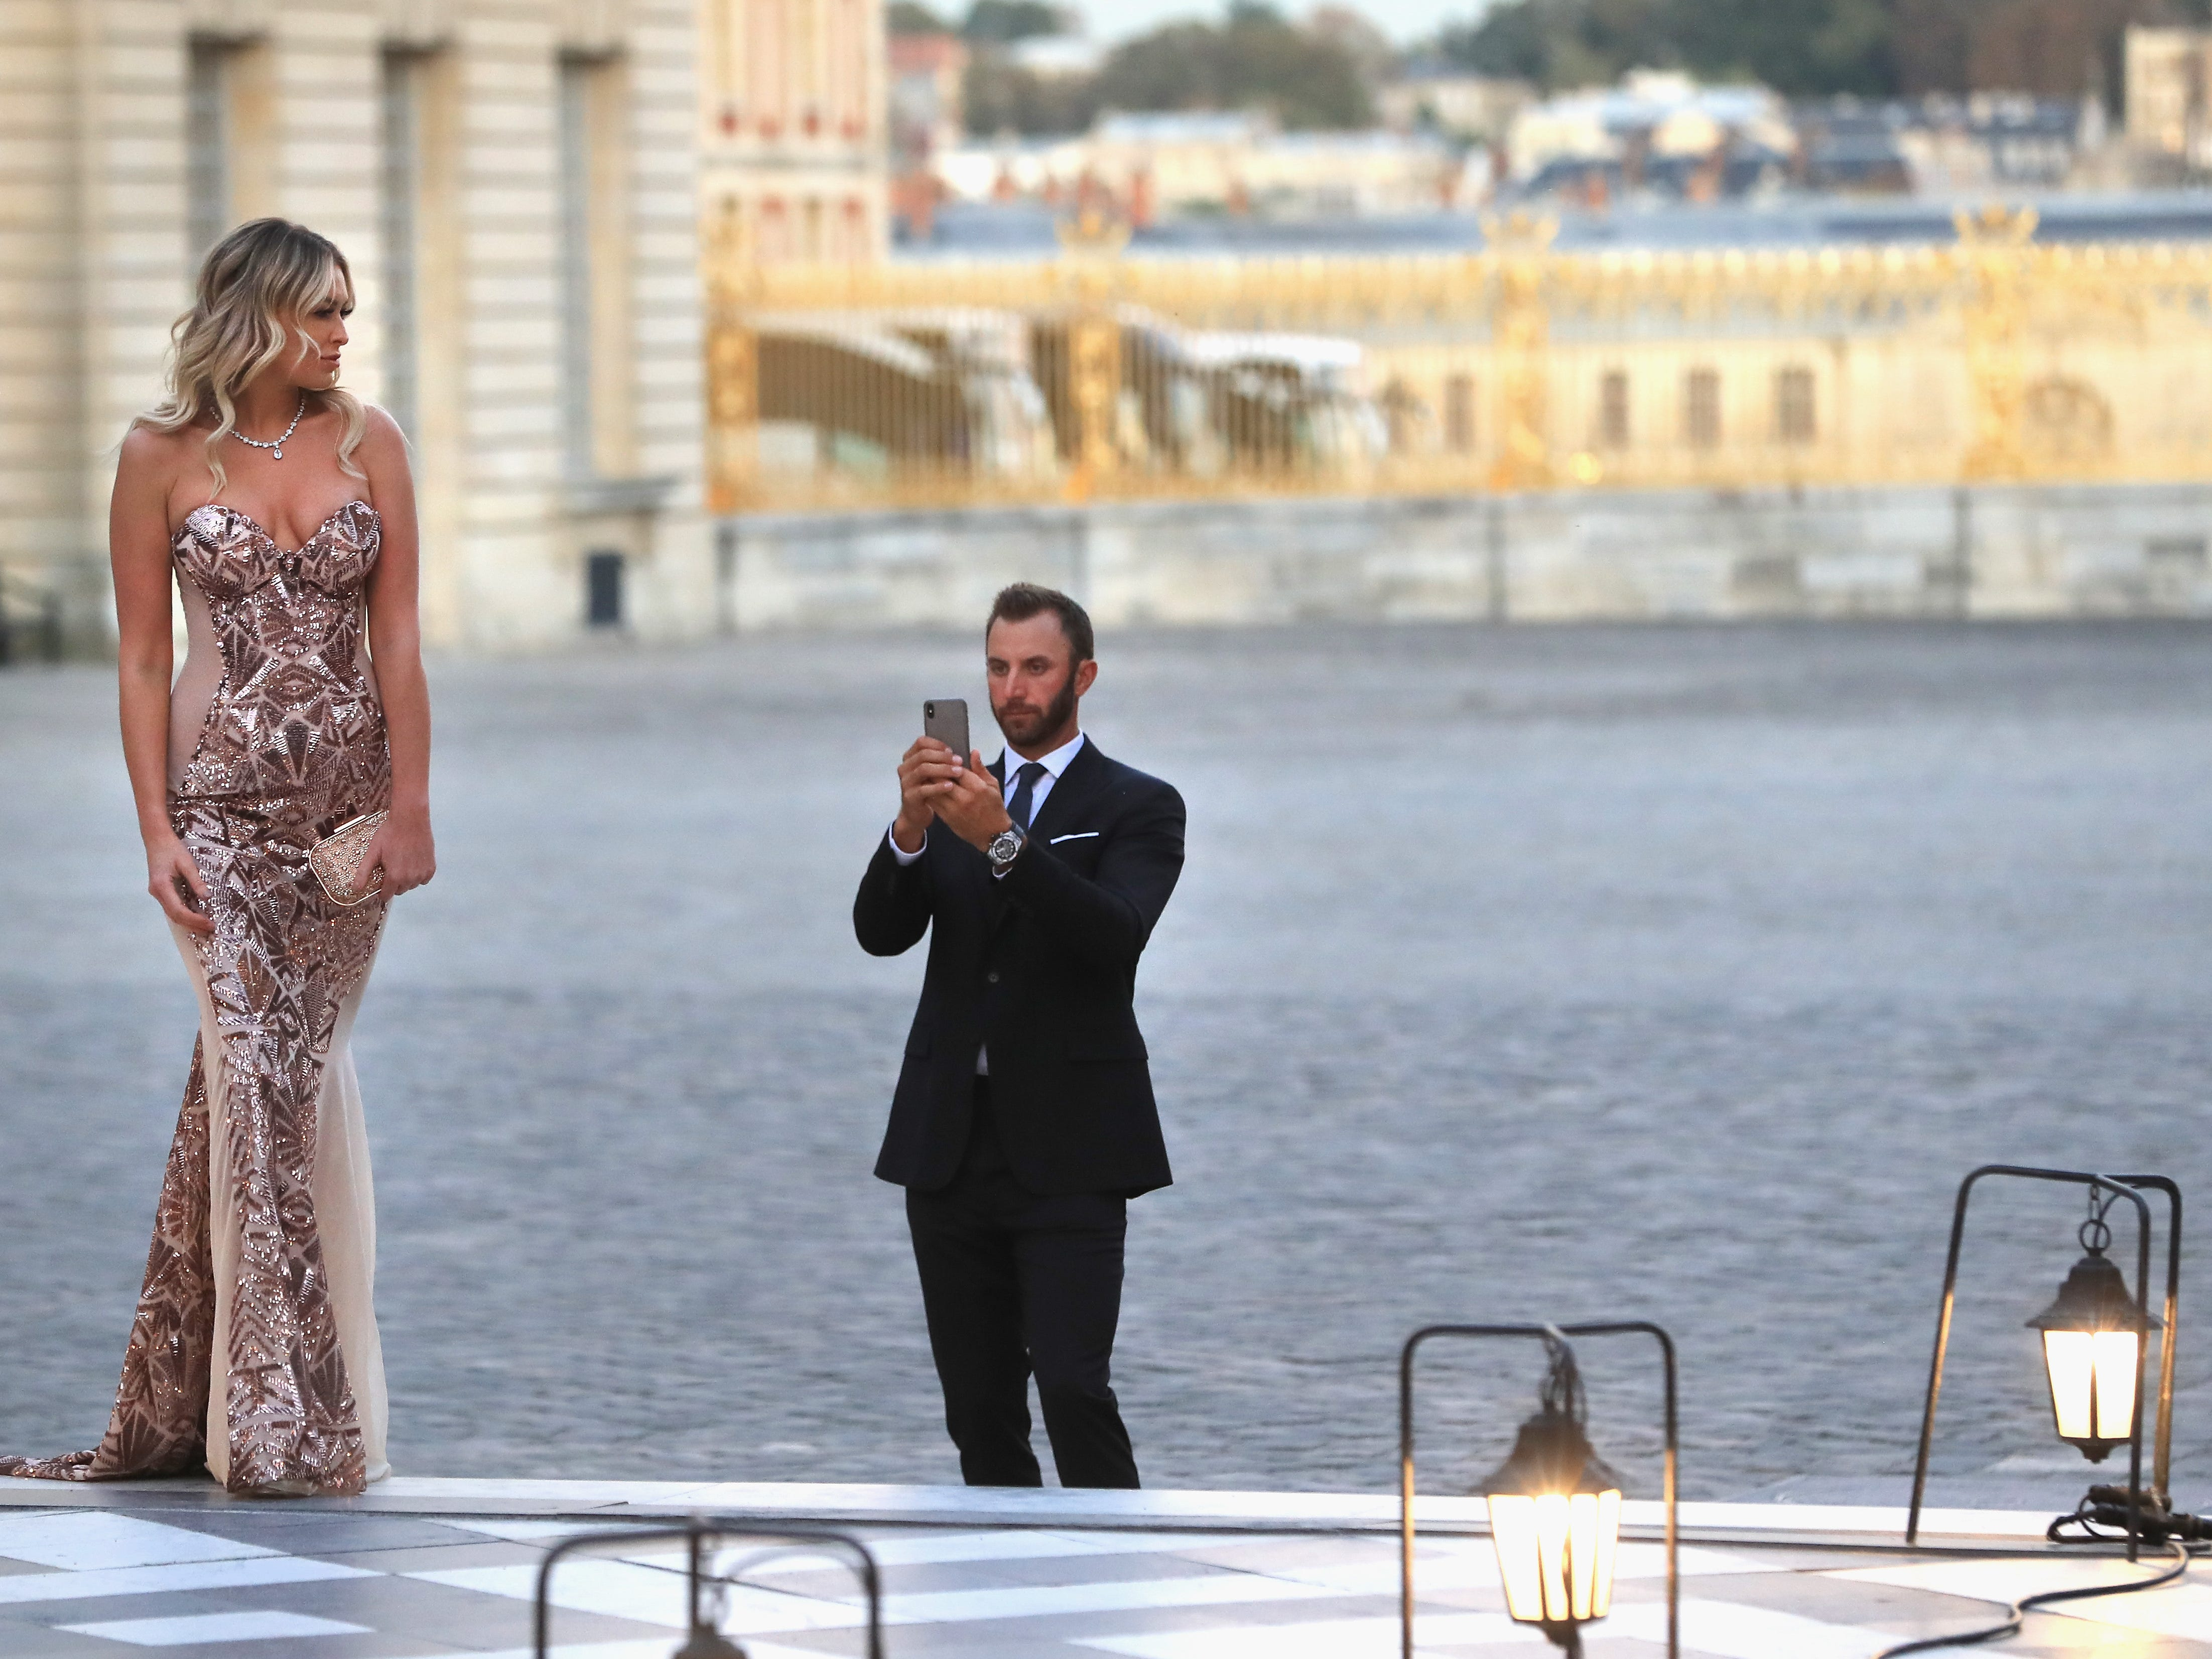 Dustin Johnson takes some shots of his fiancee Paulina Gretzky at the Ryder Cup gala at the Palace of Versailles on Sept. 26.